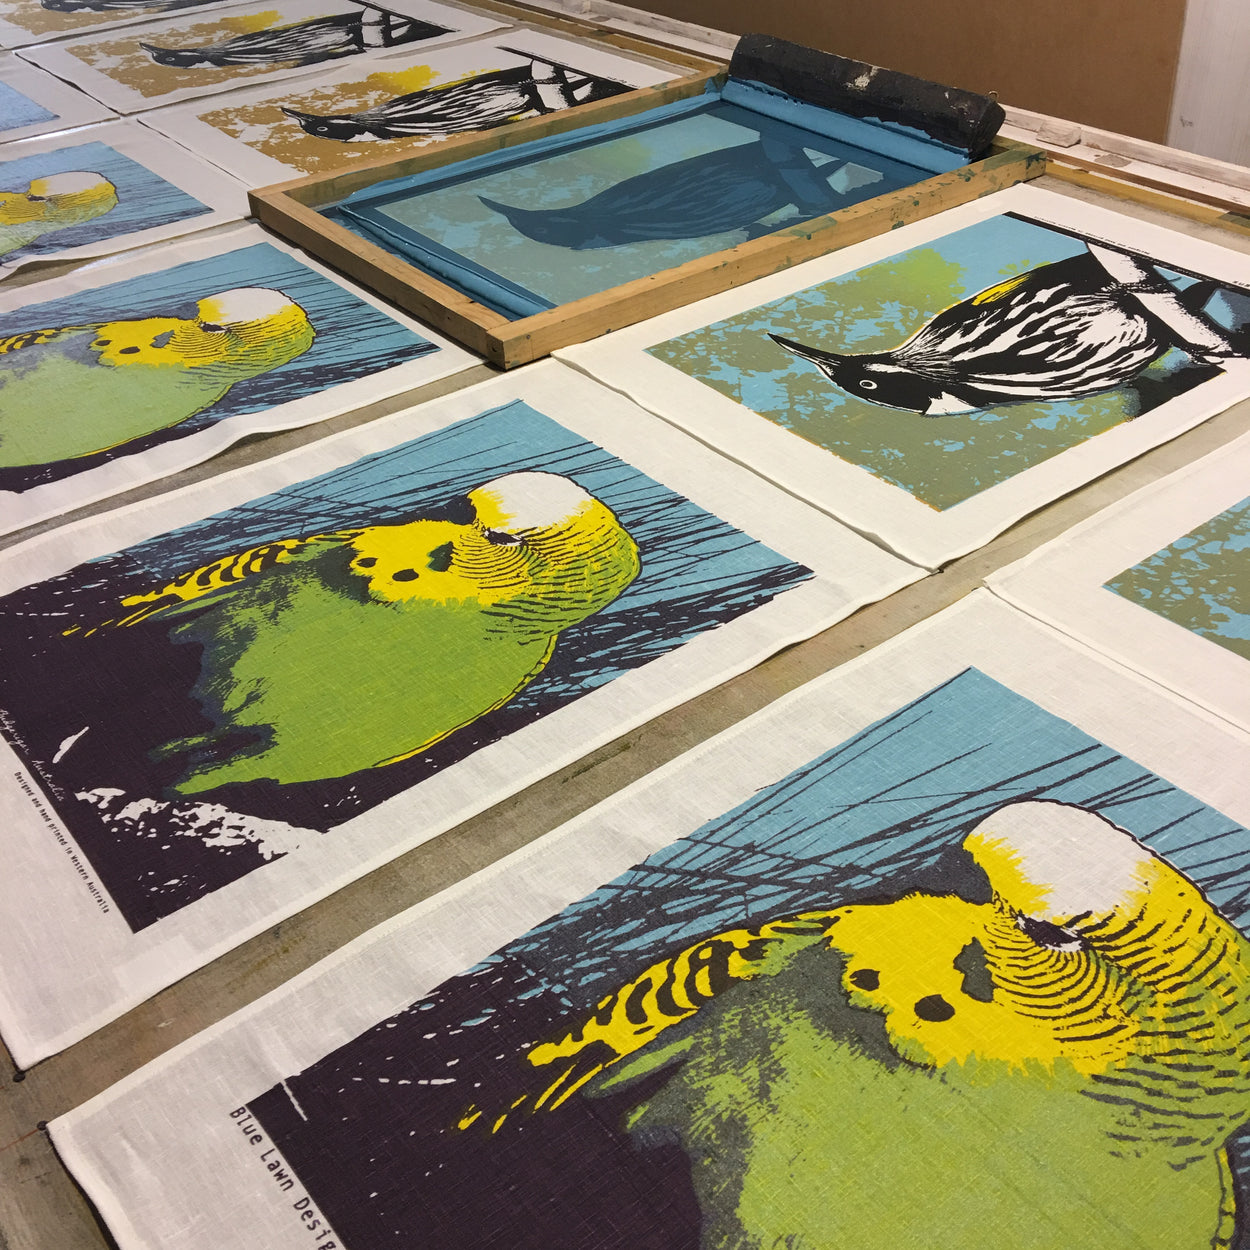 Photograph of native birds tea towels being printed.